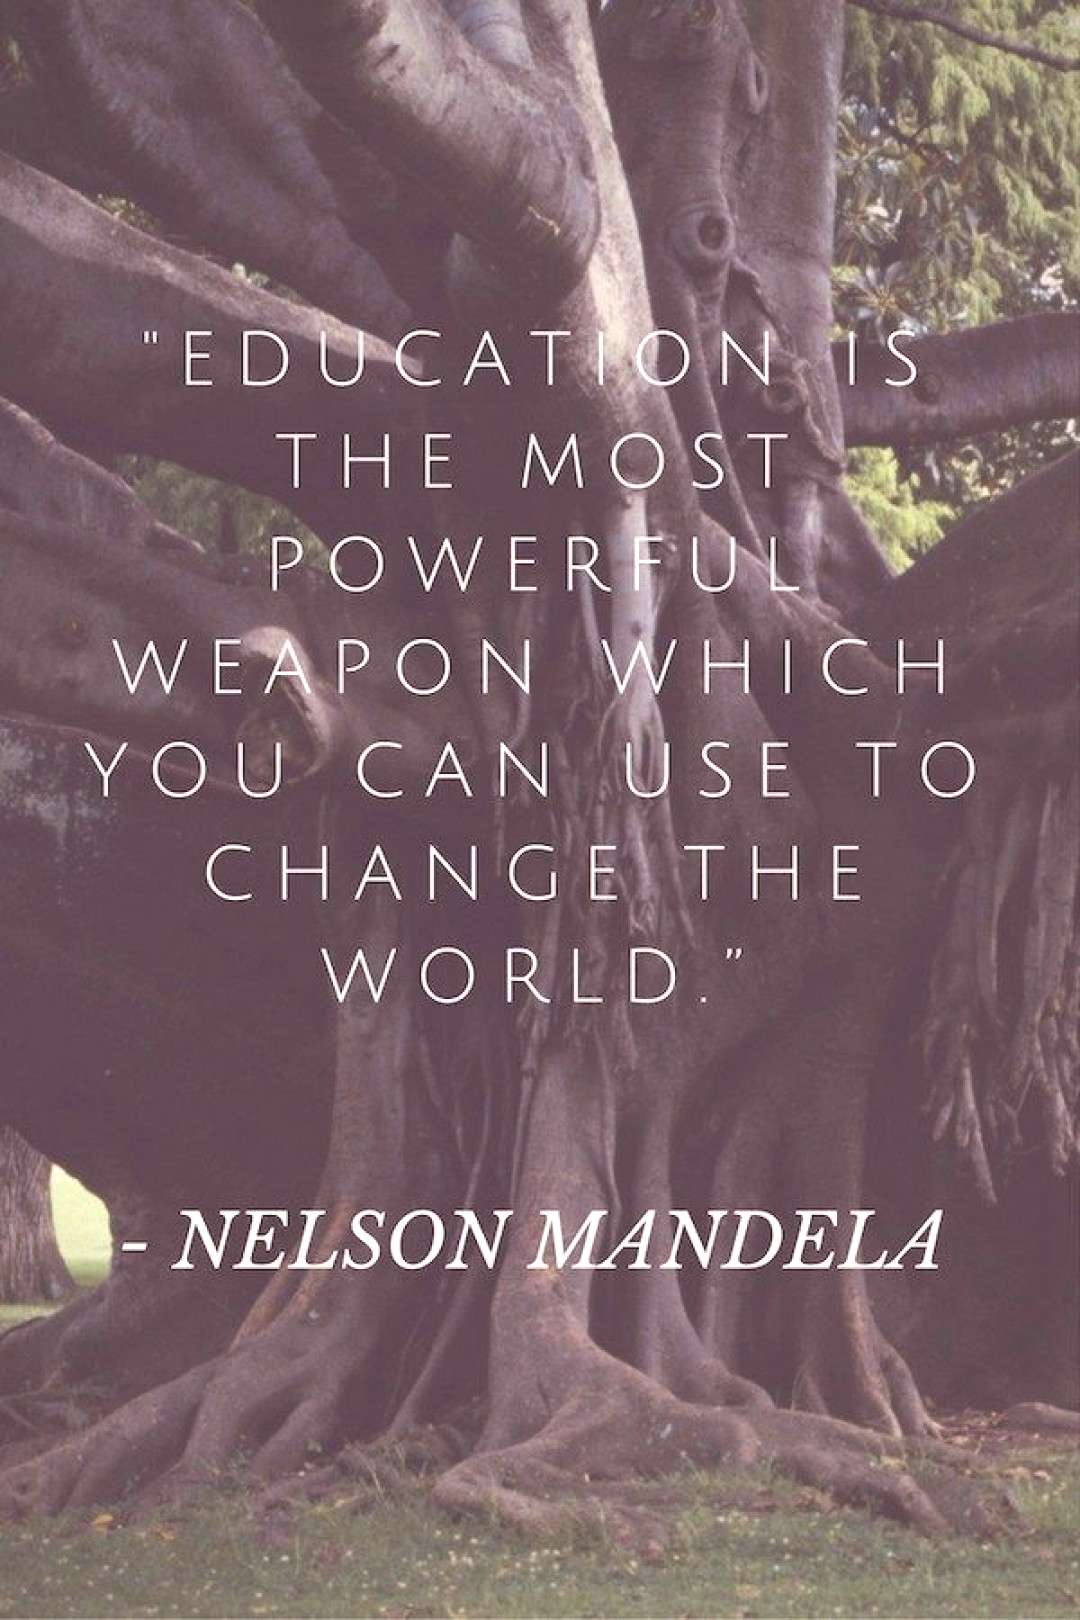 Quotes from Nelson Mandela- great for kids to learn from his wisdom about love, education, and acce